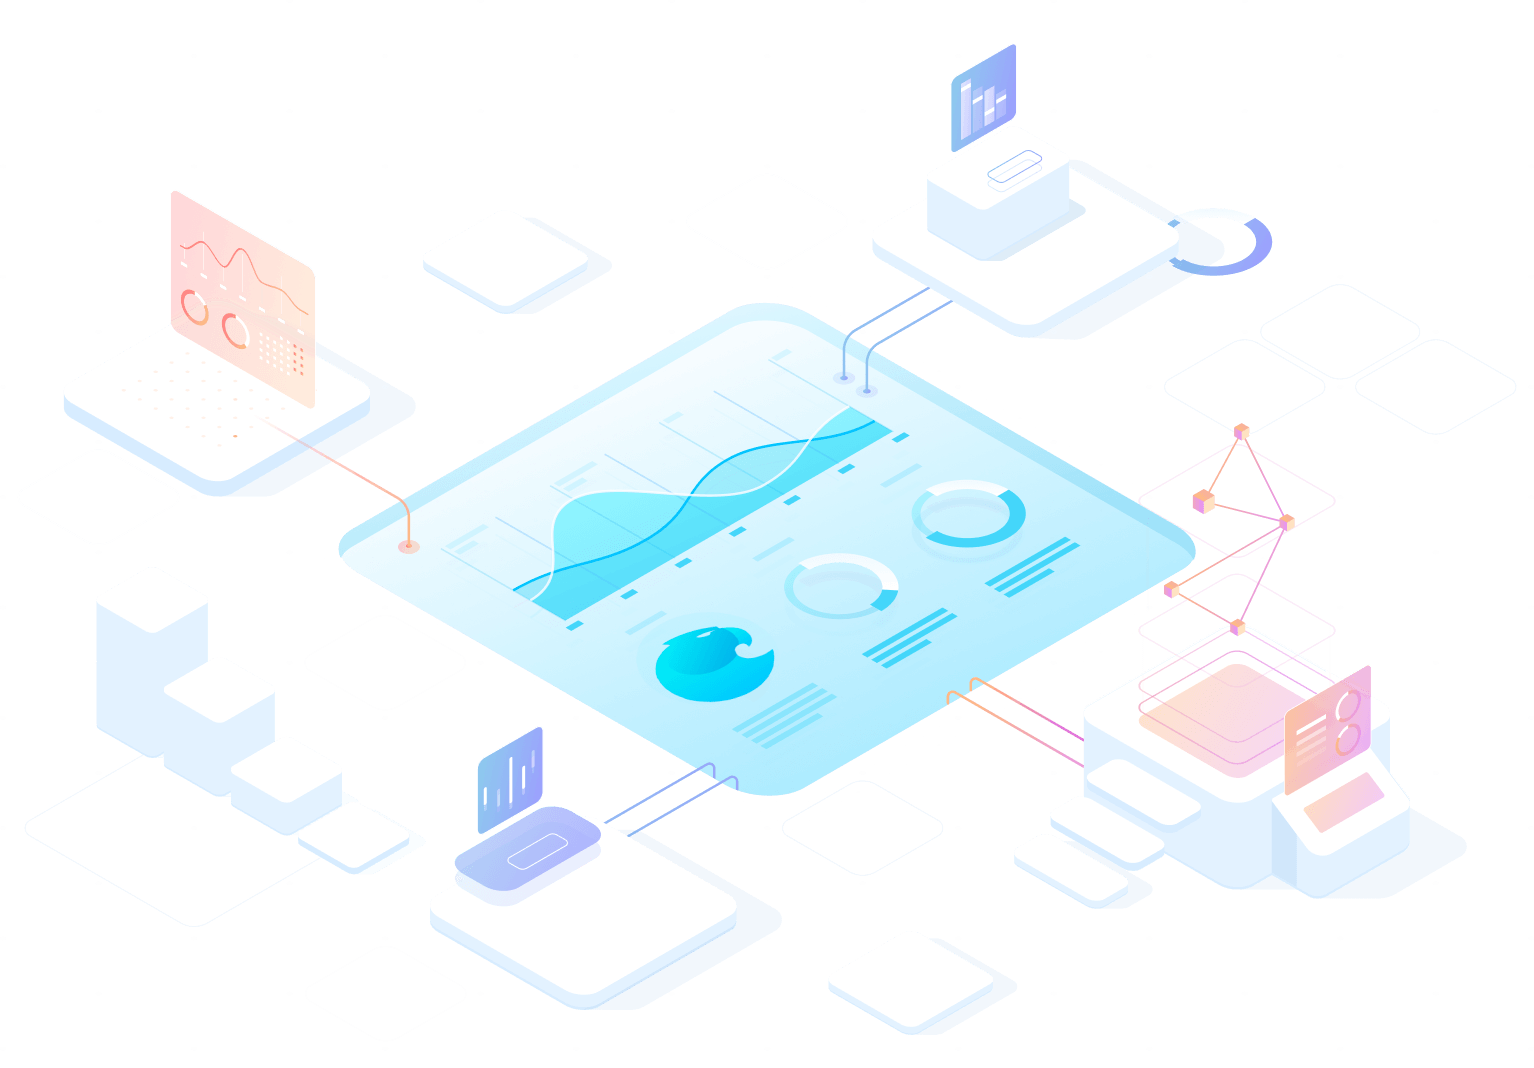 Aragon the decentralized solution for DAOs